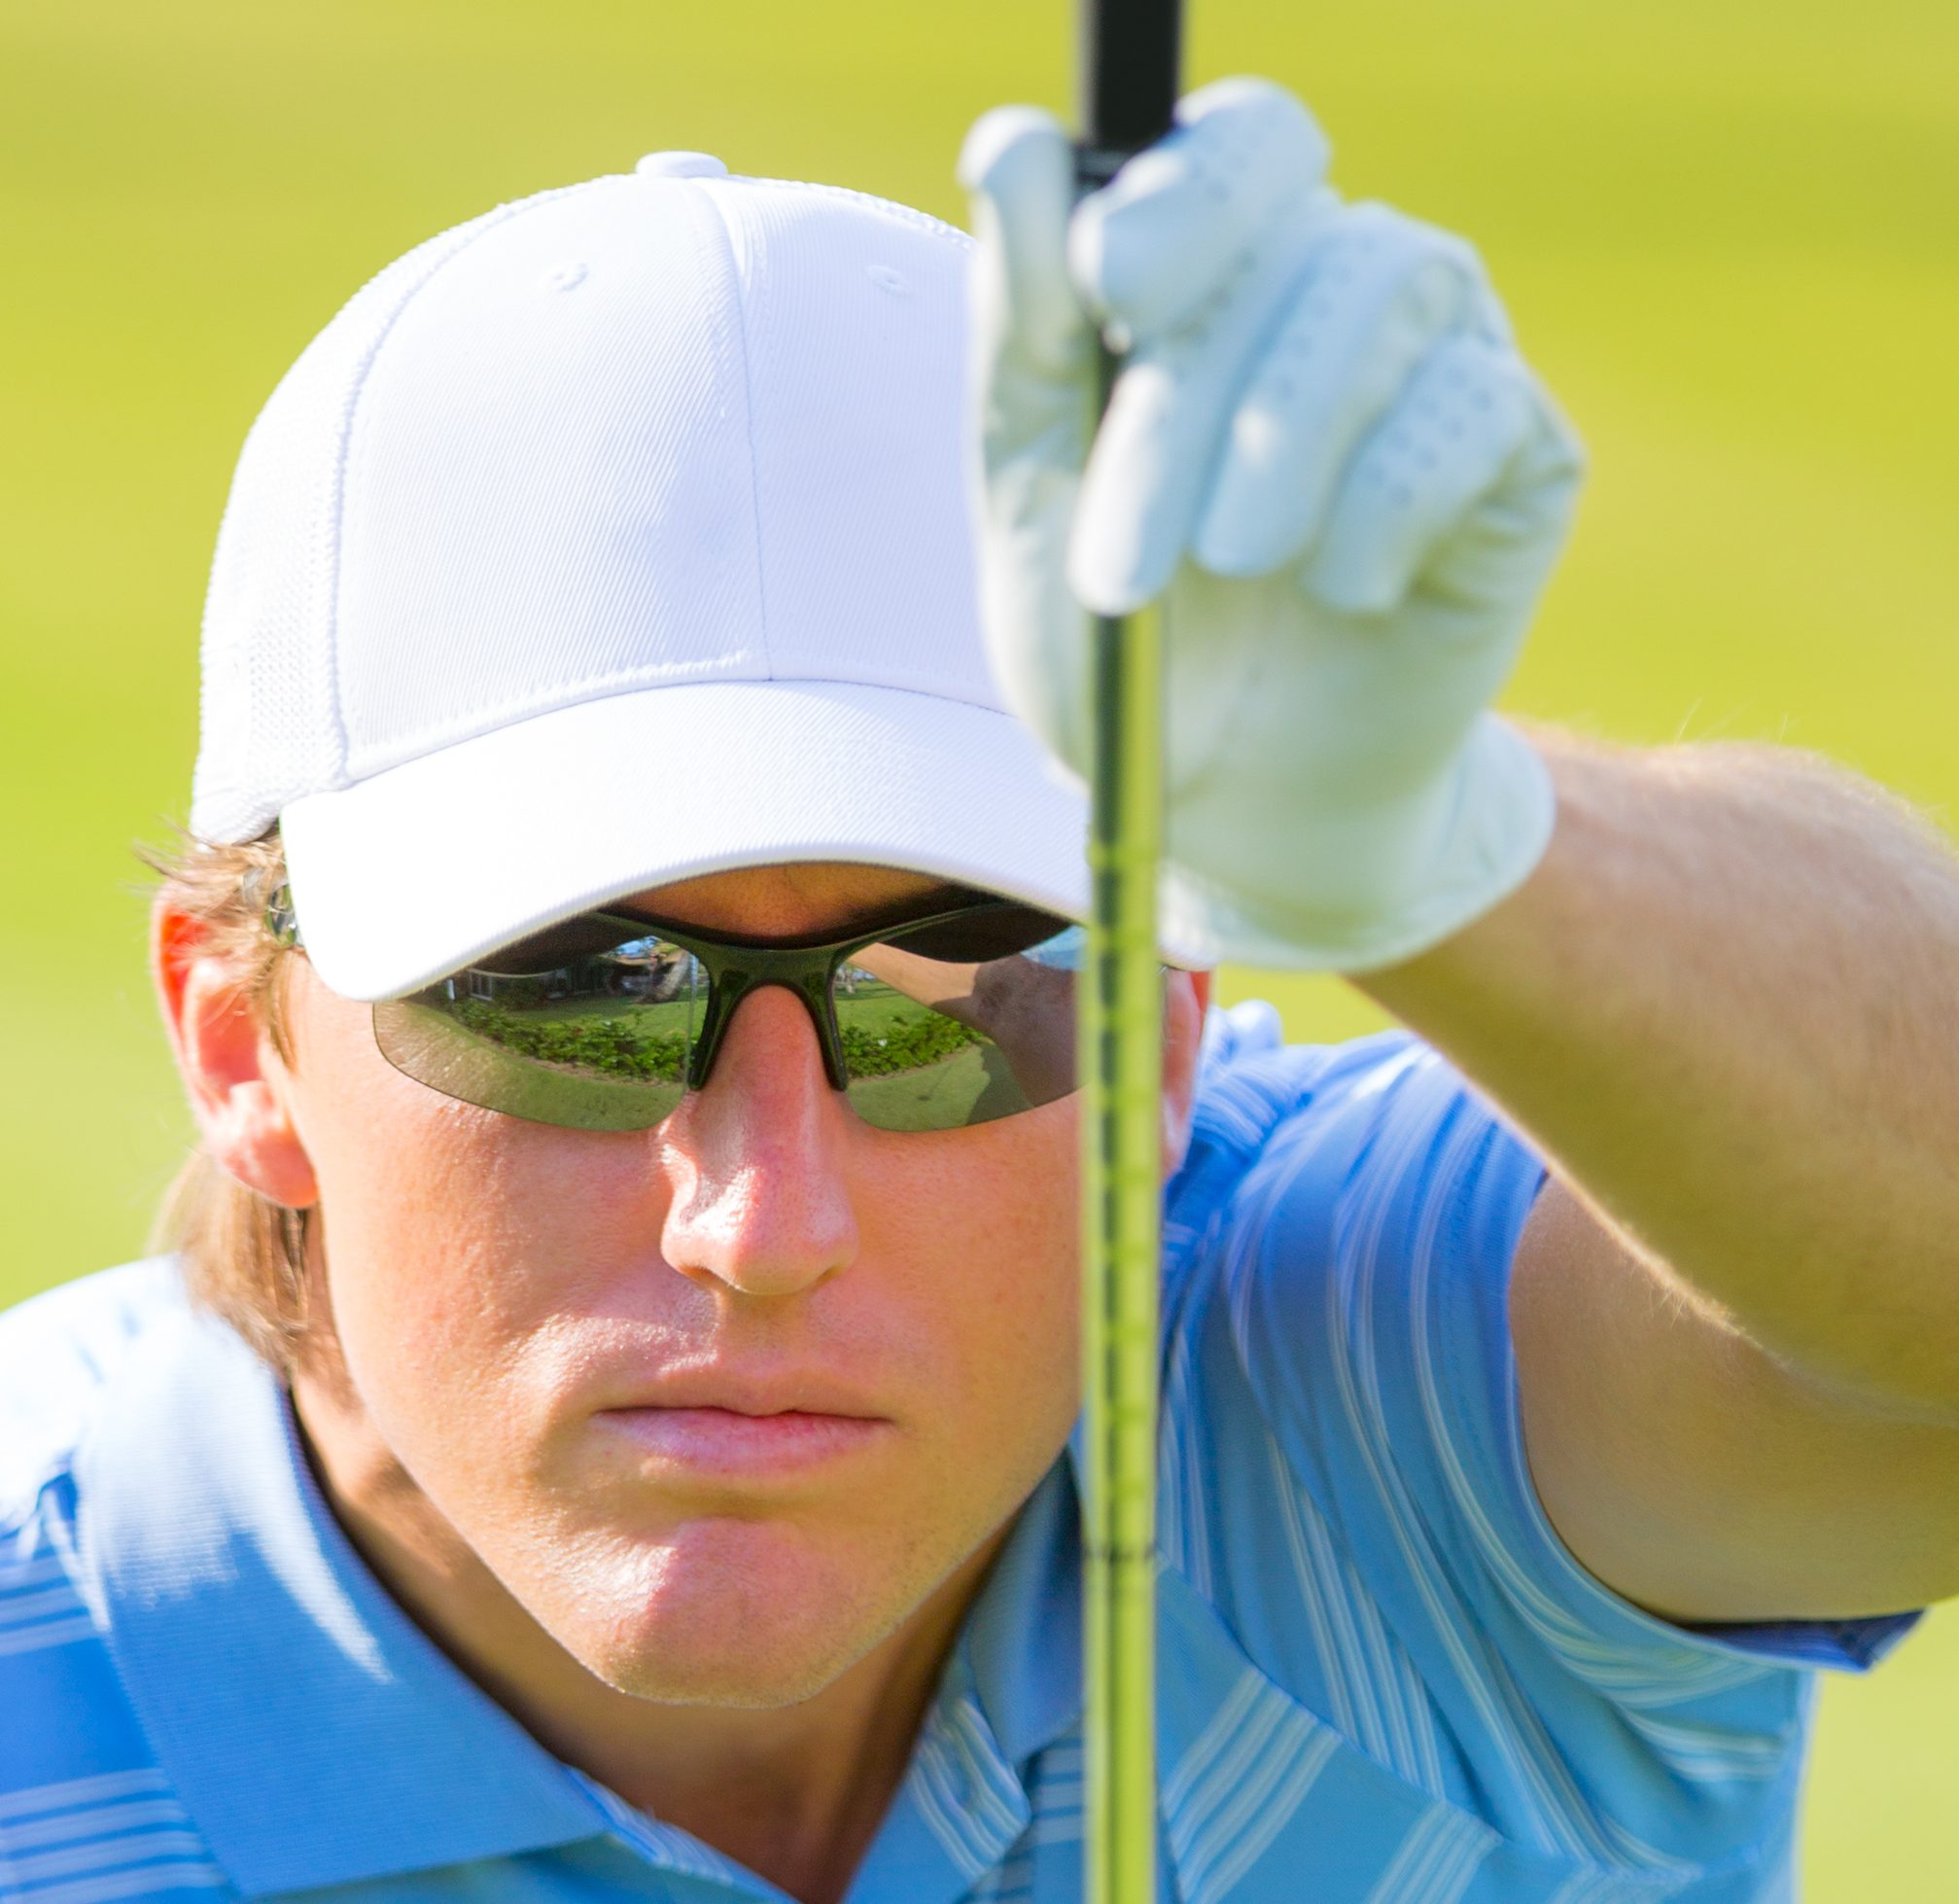 Man wearing specialty eyewear while golfing